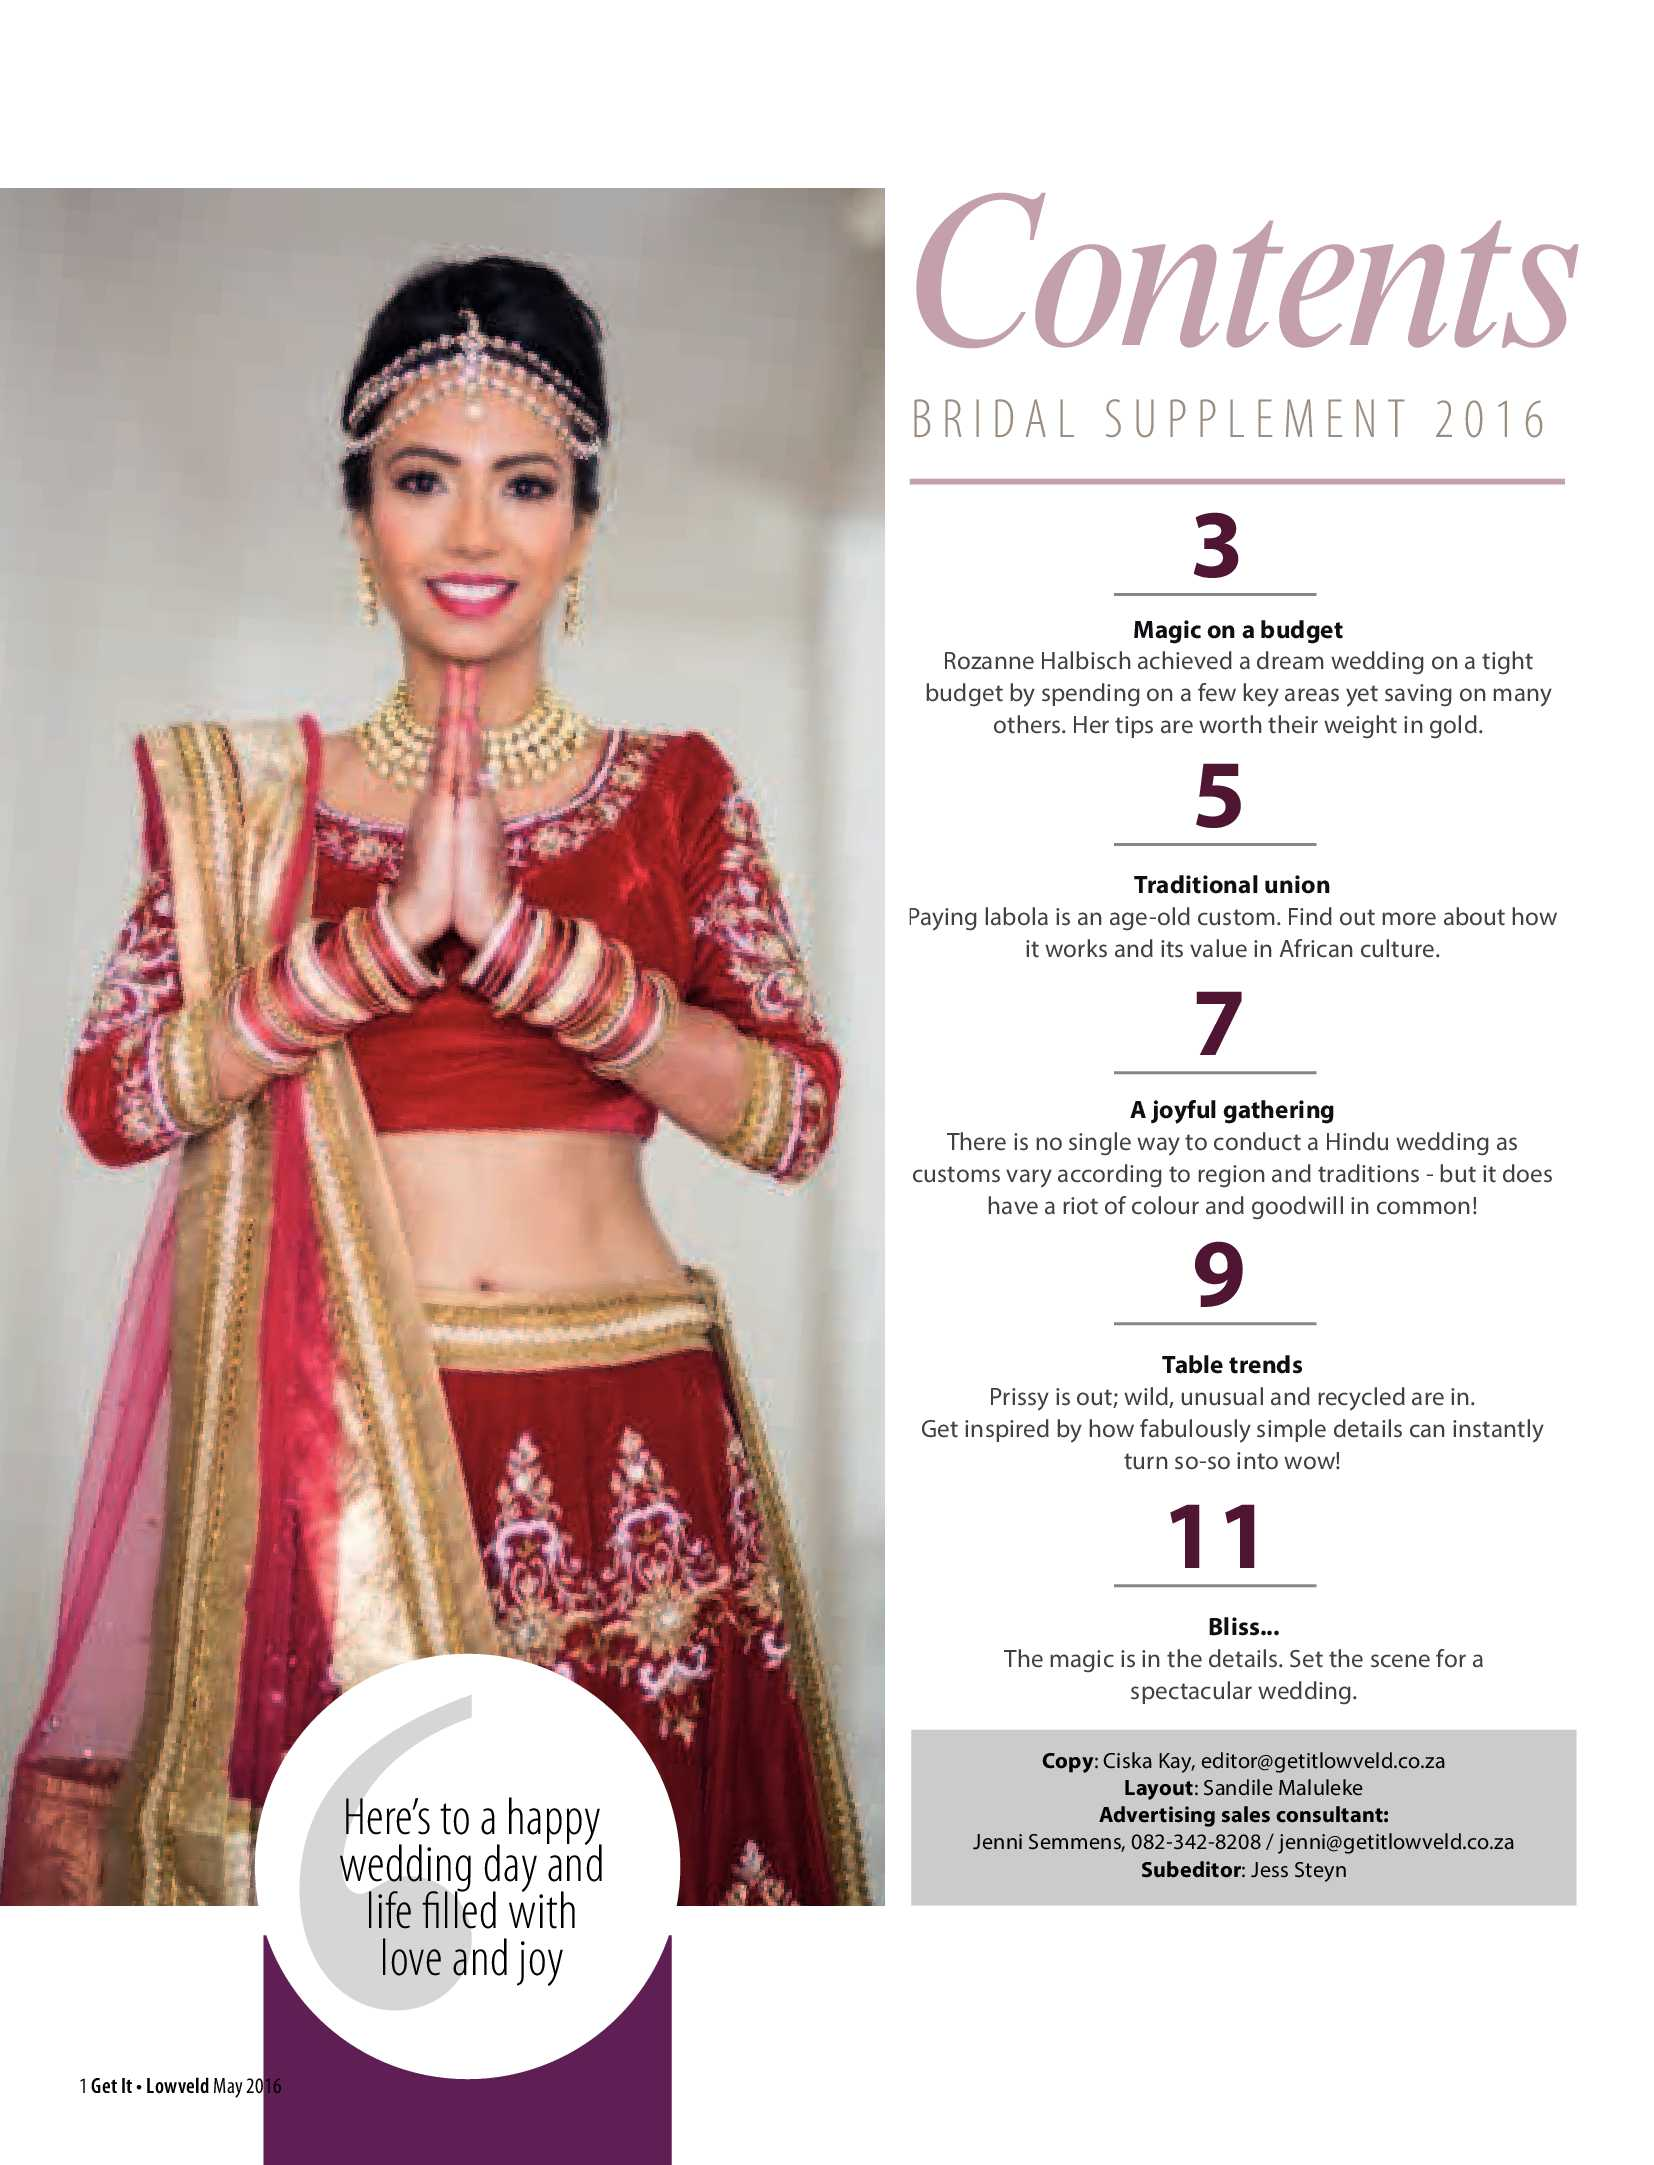 get-lowveld-bridal-supplement-2016-epapers-page-2